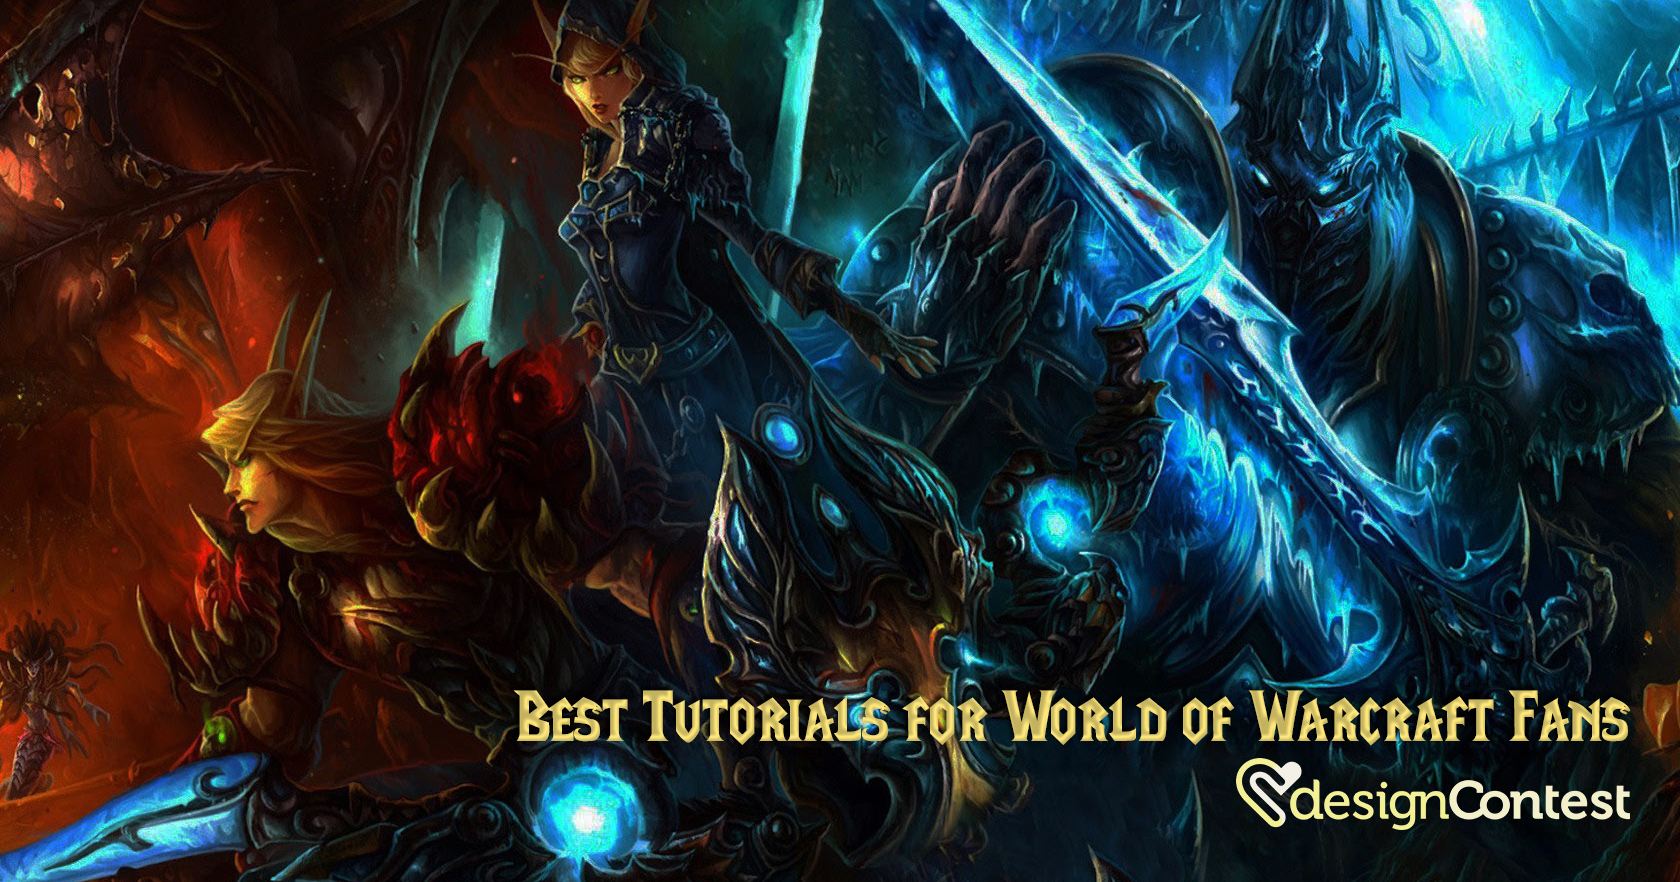 Best Tutorials for World of Warcraft Fans